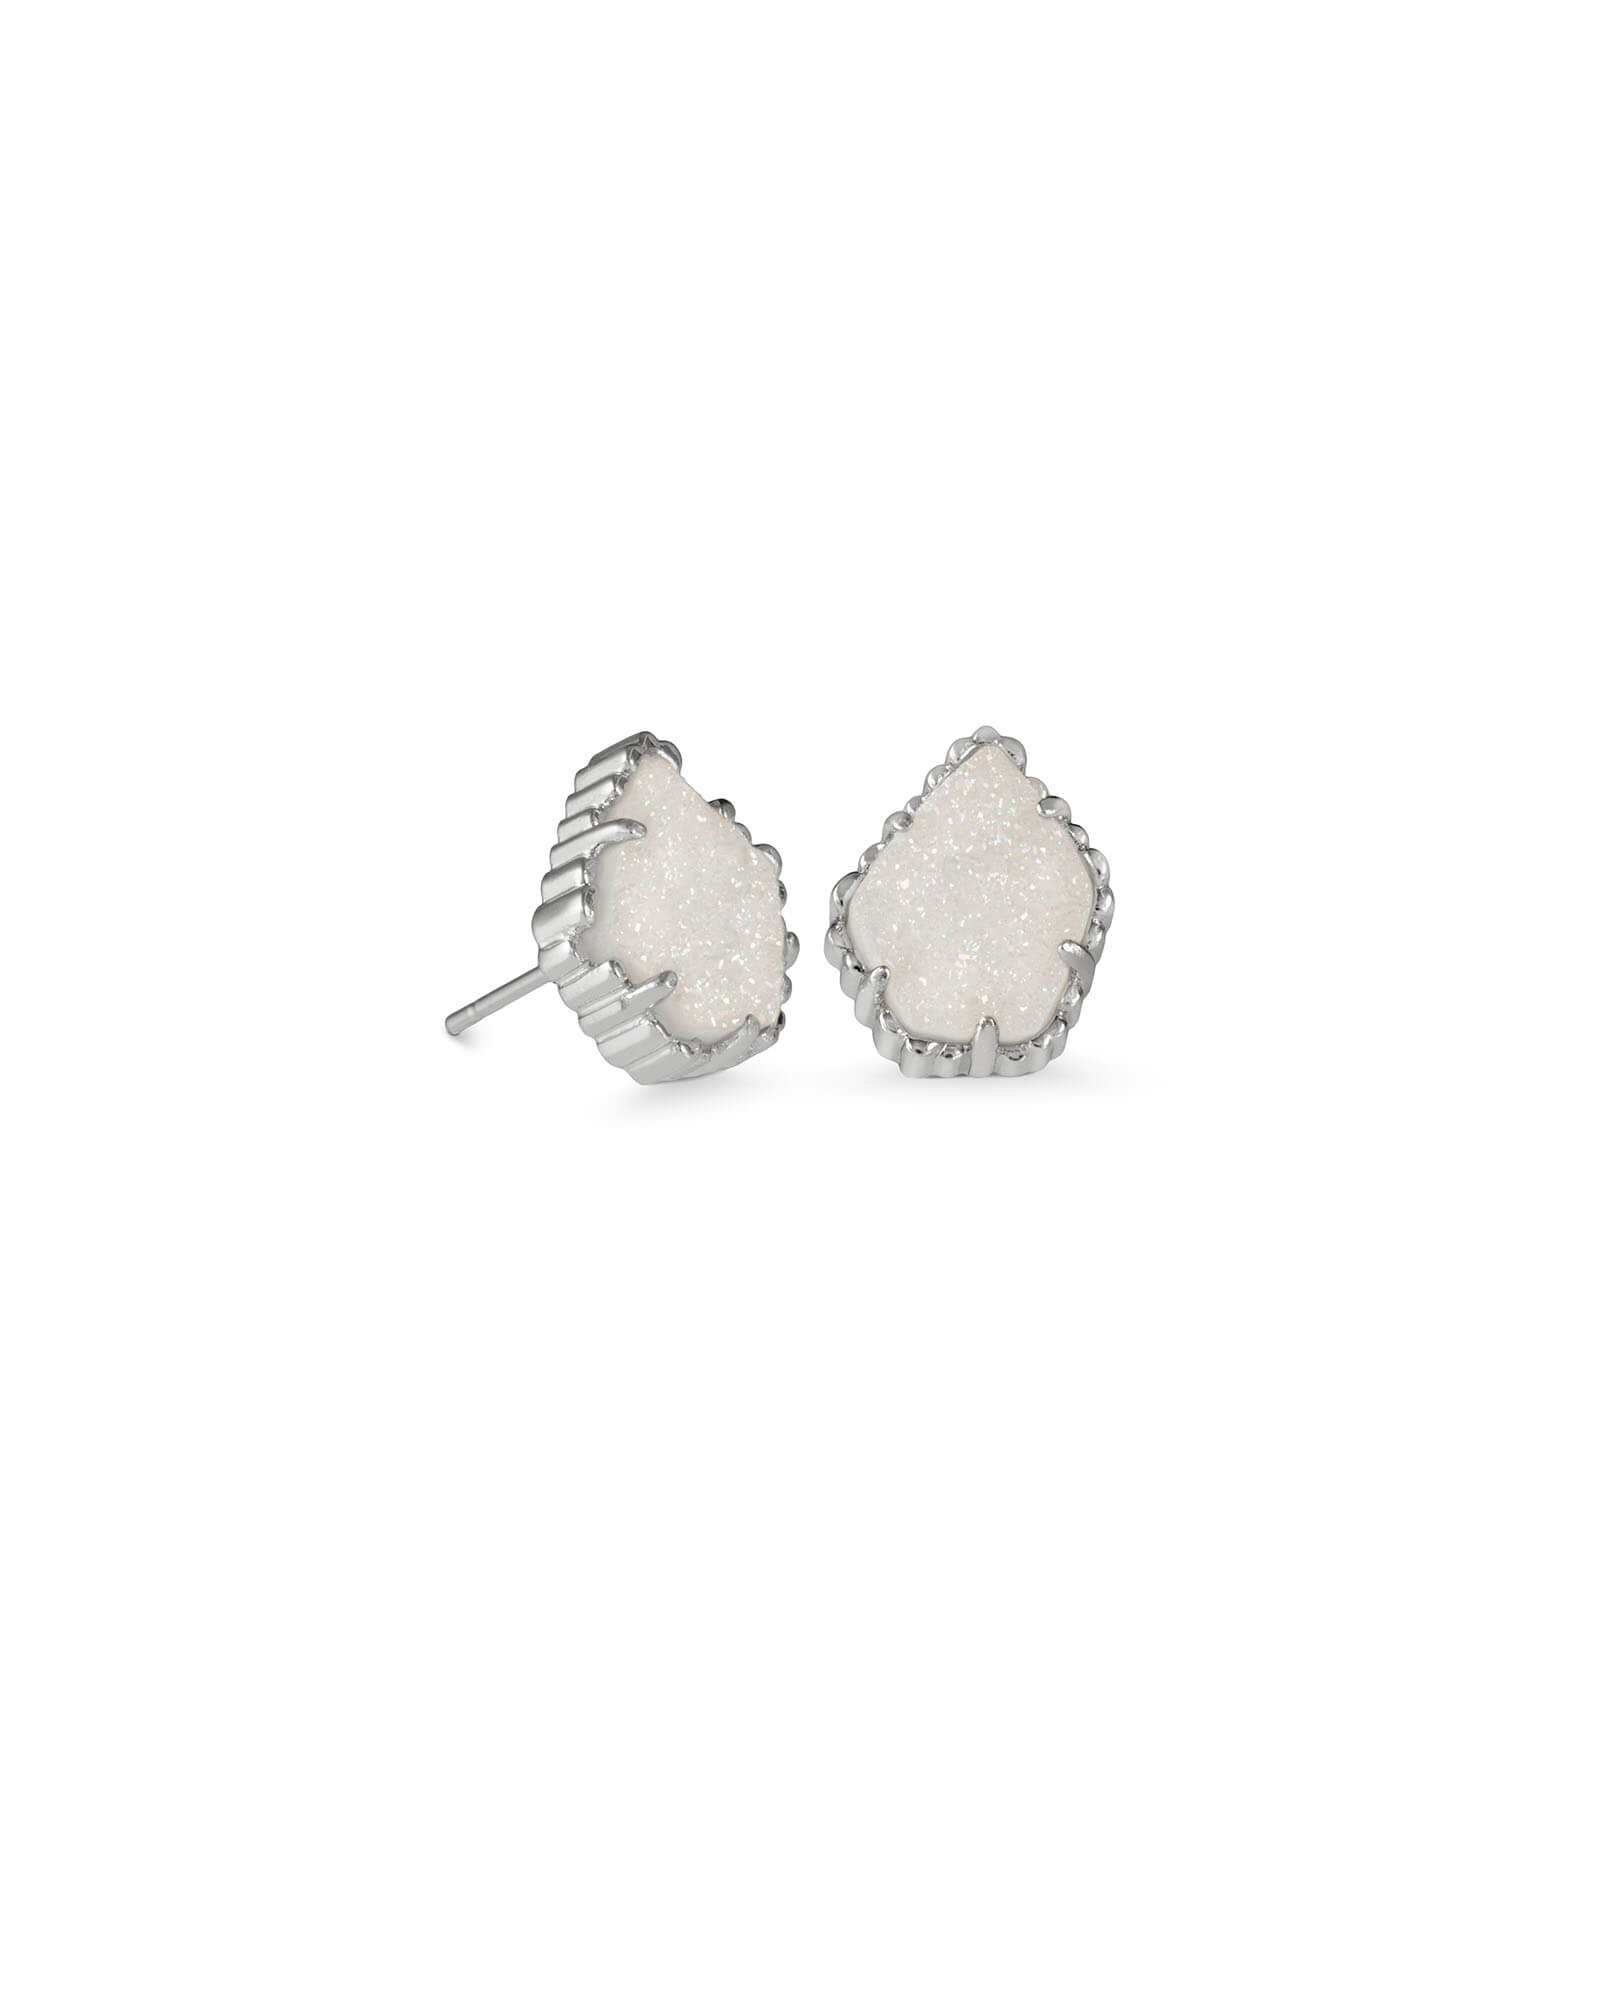 757a968e2 Tessa Silver Stud Earrings in Iridescent Drusy | Kendra Scott